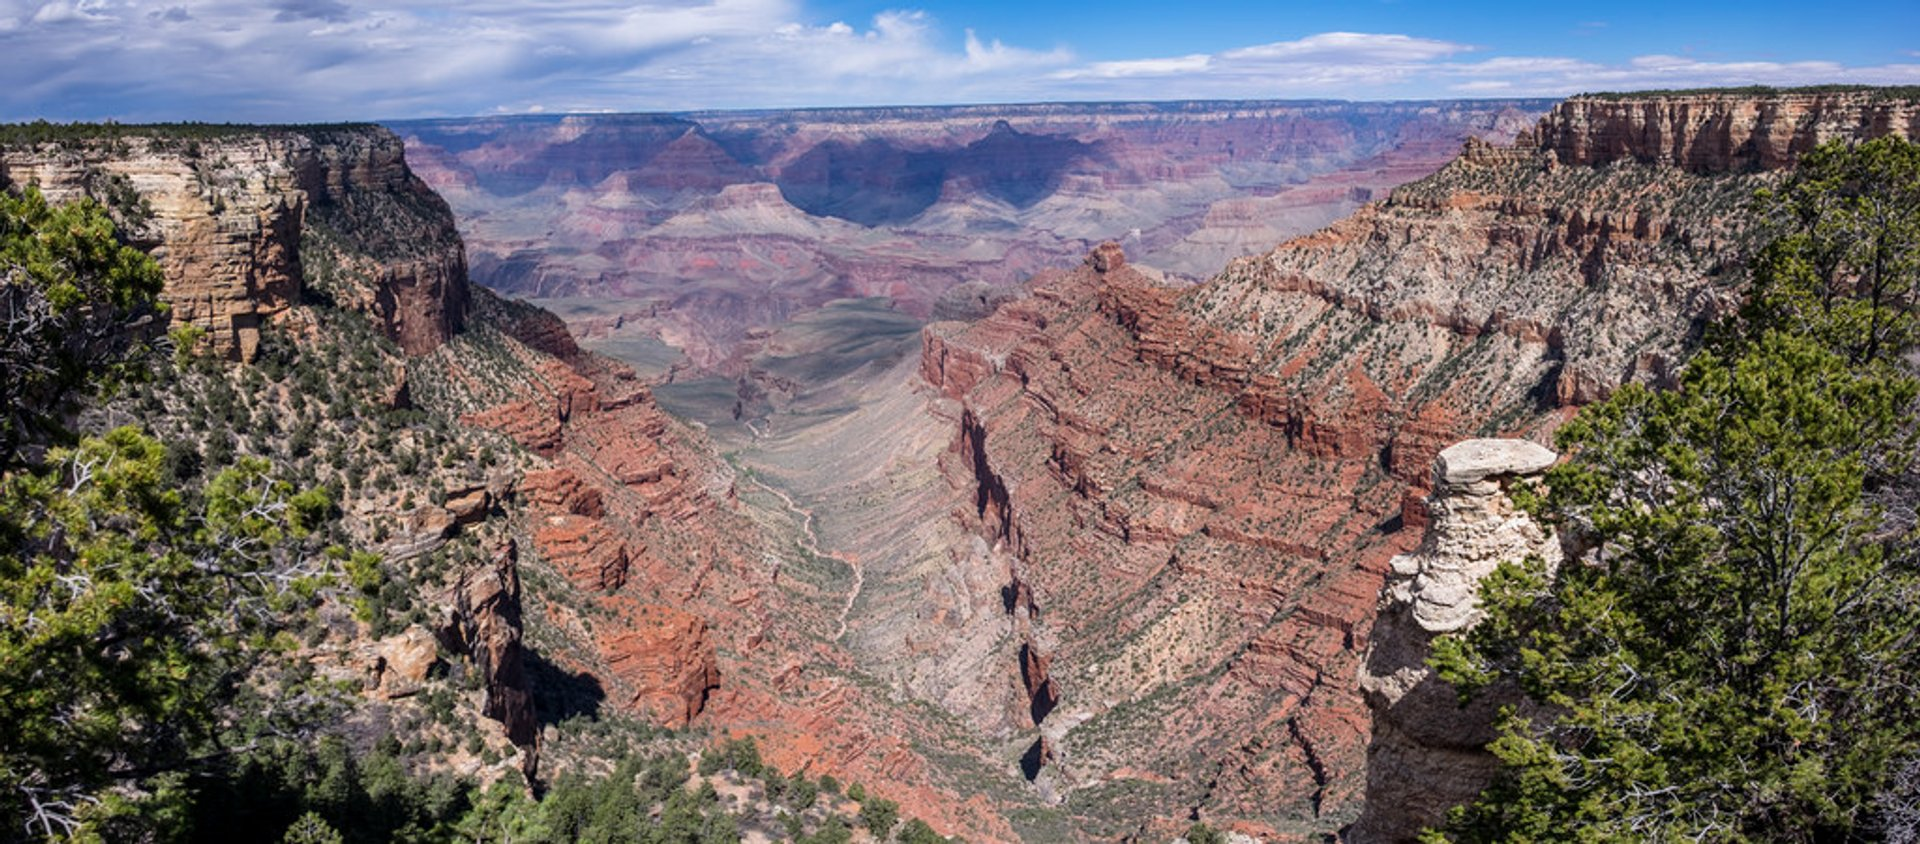 Rim to Rim Hike in Grand Canyon 2019 - Best Time